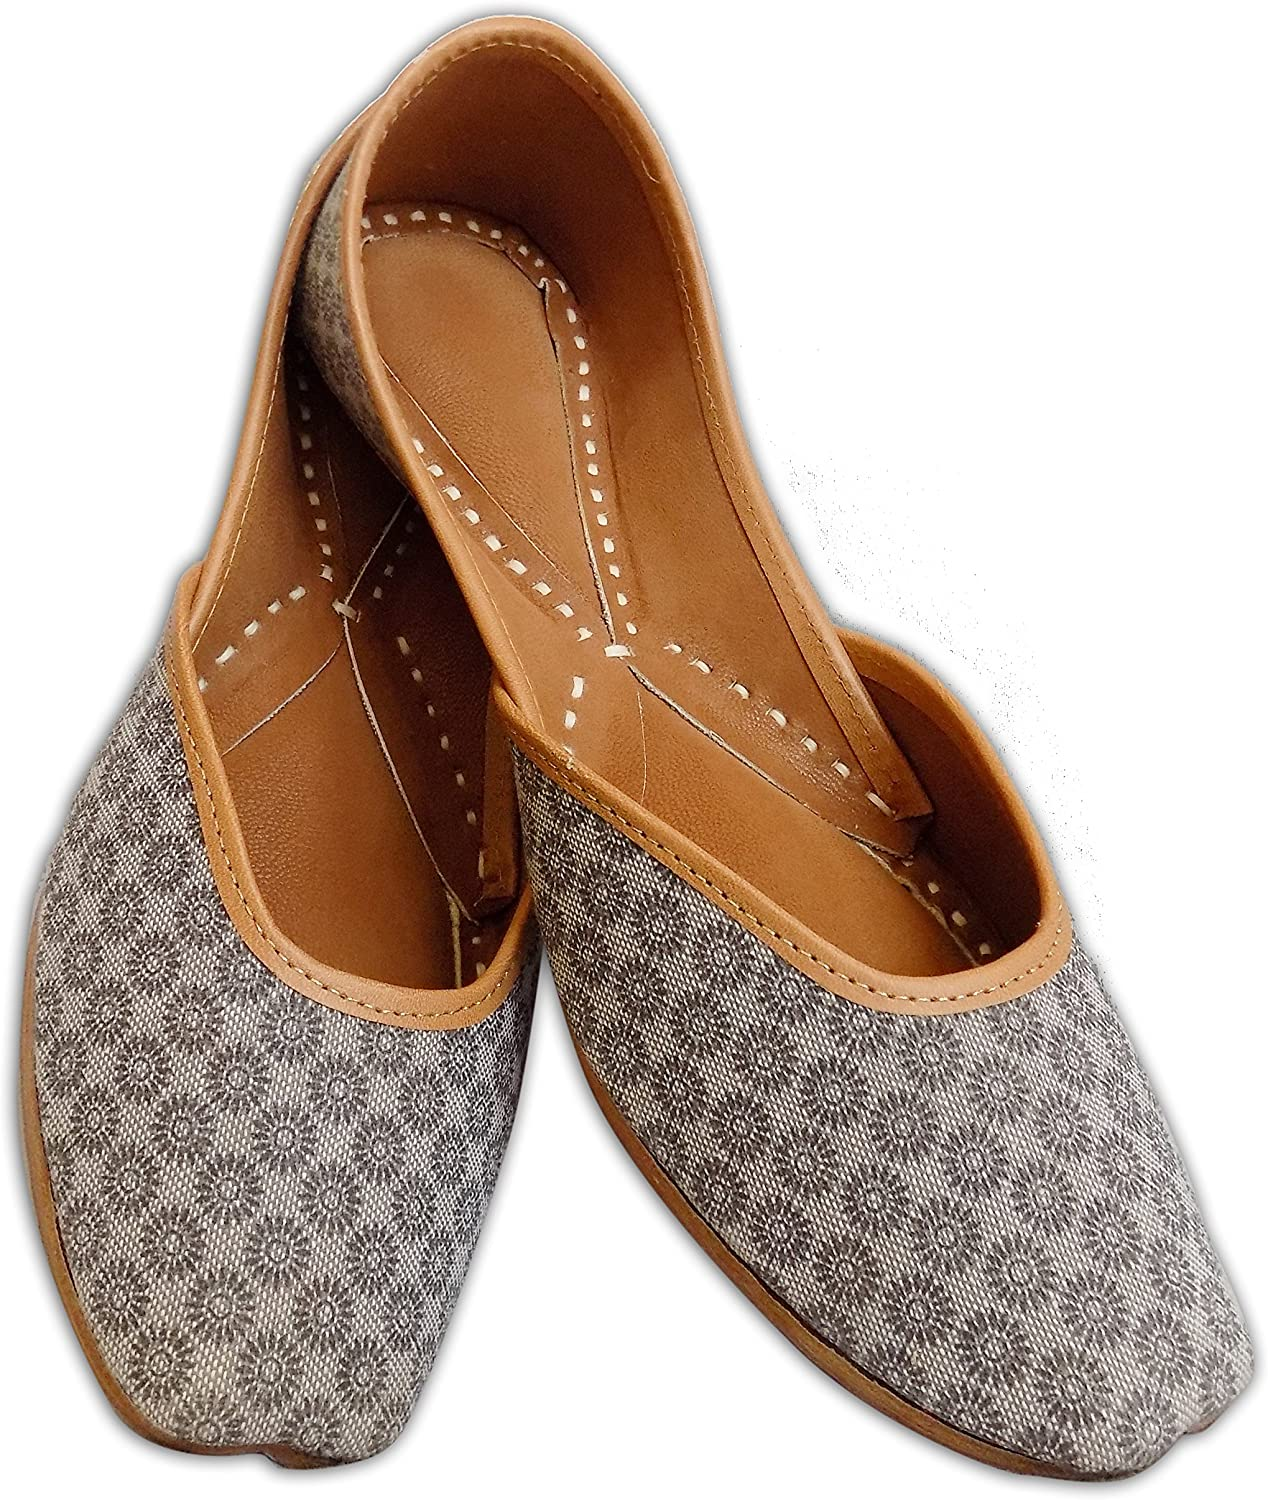 Indian Ethnic Printed Jutti Mojari Ballet Flats Traditional colord Pump shoes for Women Black and White